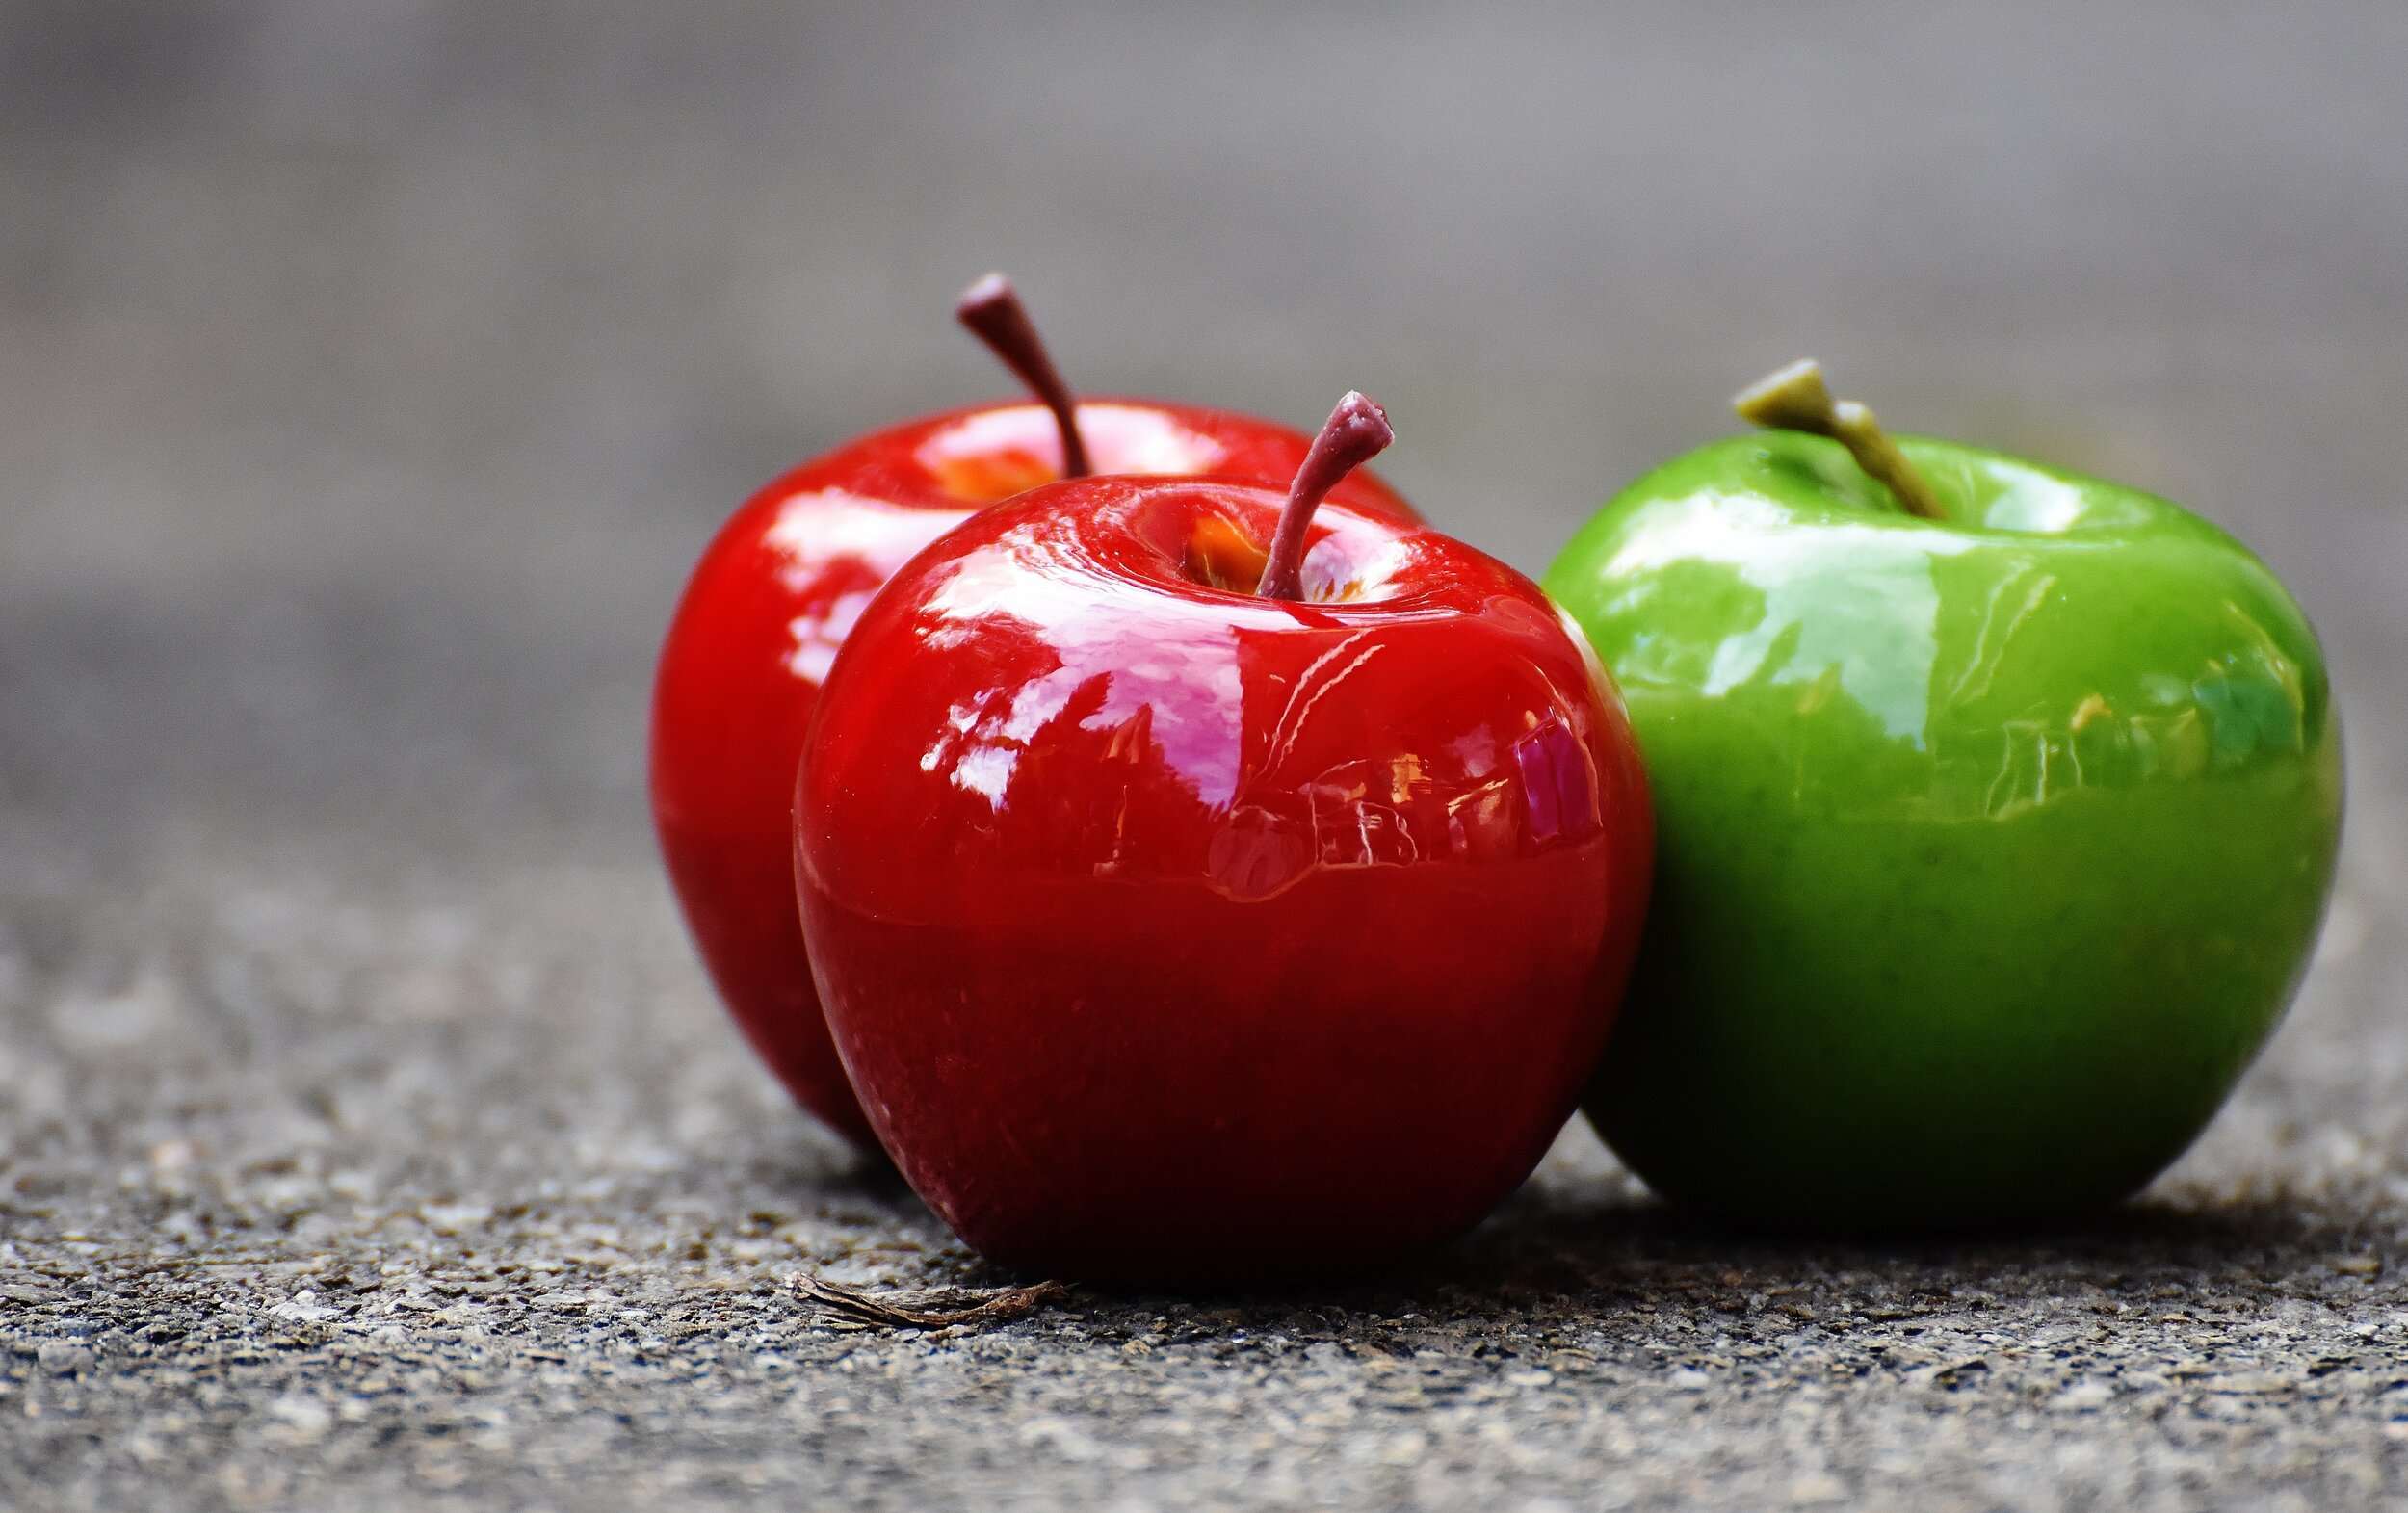 108 apples-close-up-delicious-209339.jpg